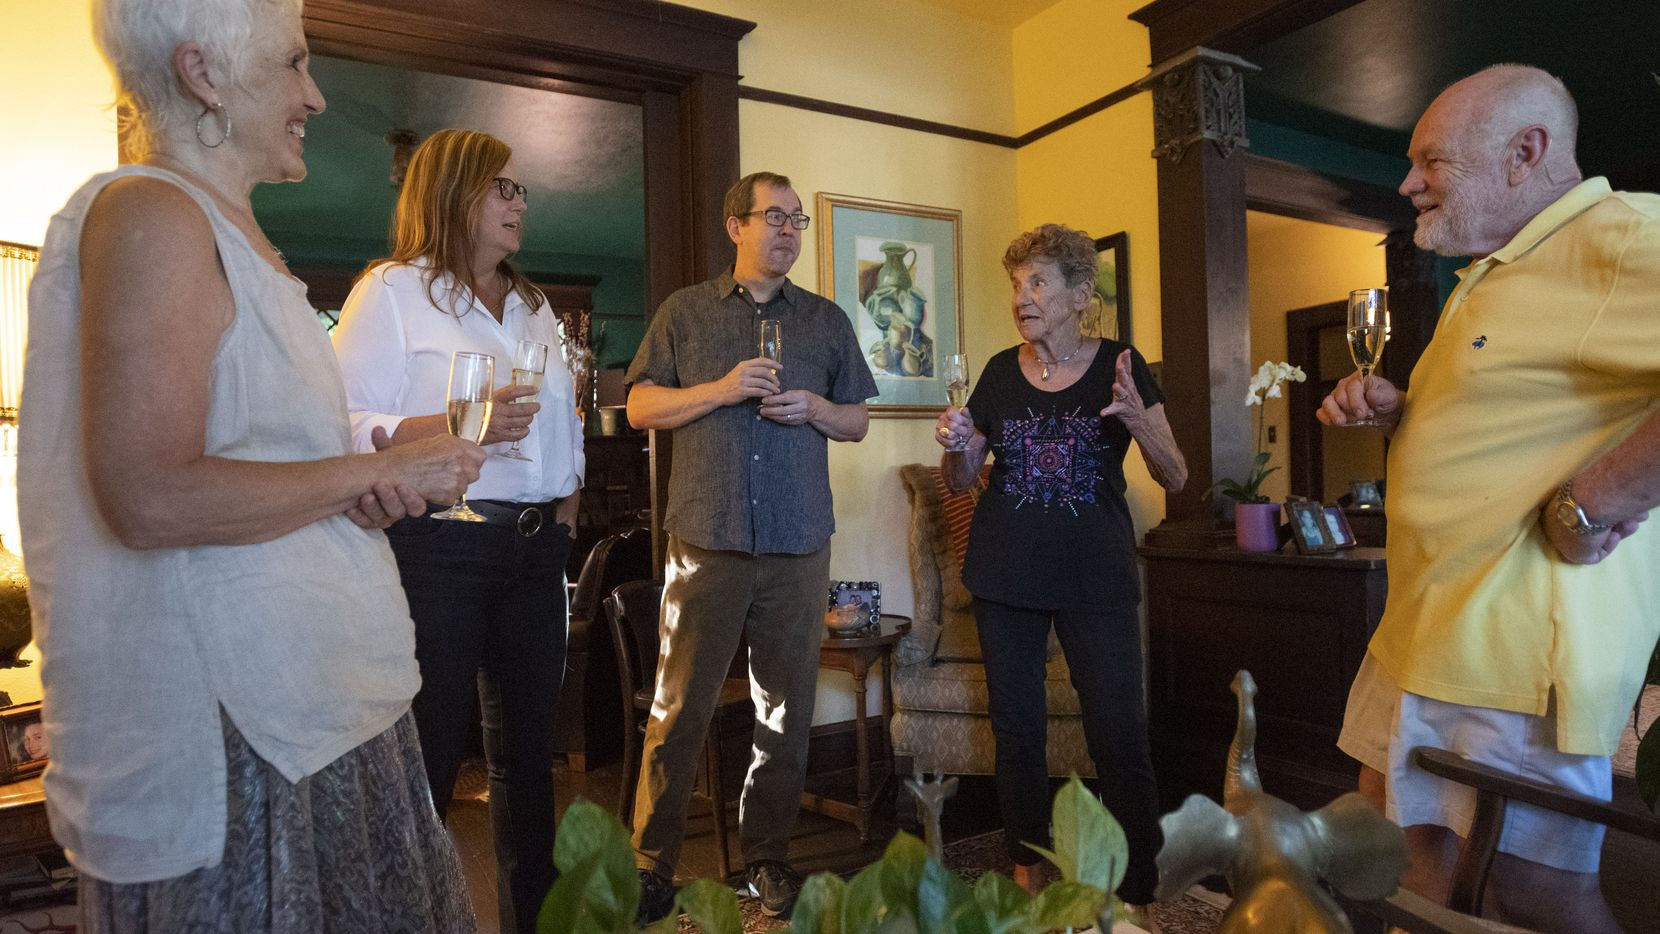 Martha Heimberg (second from right) and her husband, Ron Sekerak (right), celebrate seeing family friend Terri Raith (from left), daughter Jessica Heimberg and her husband, Steve Paul, before a small dinner.